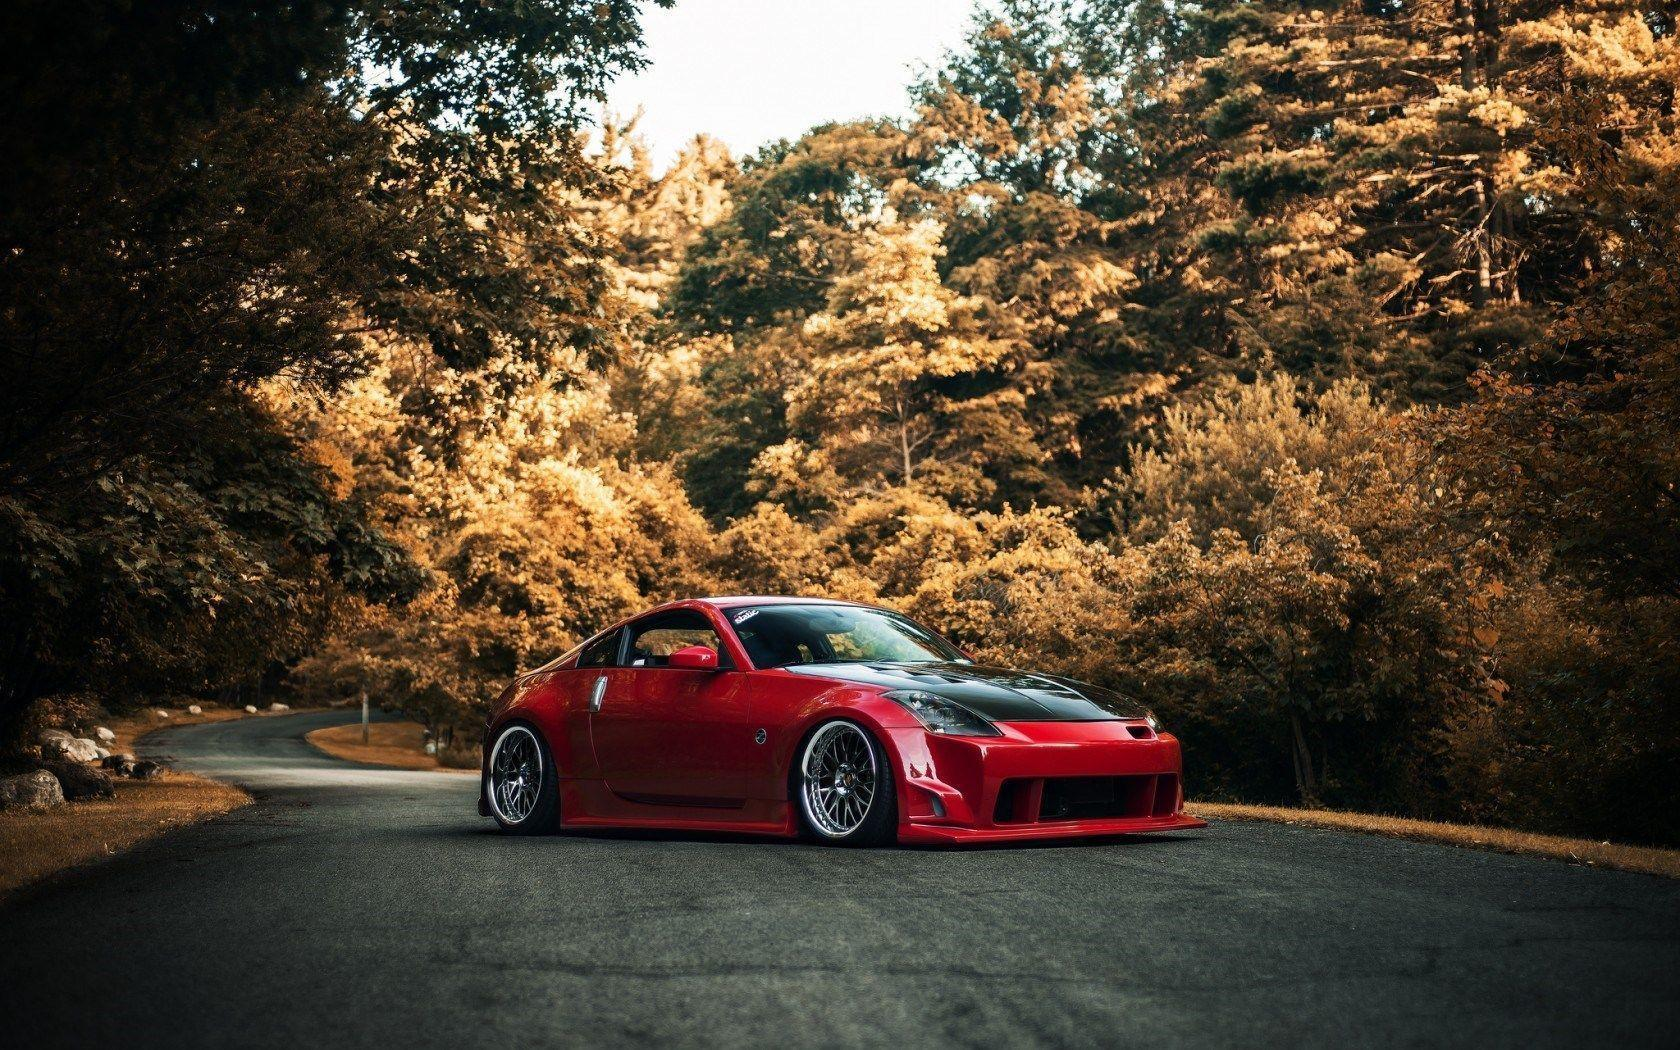 350z Wallpapers Top Free 350z Backgrounds Wallpaperaccess